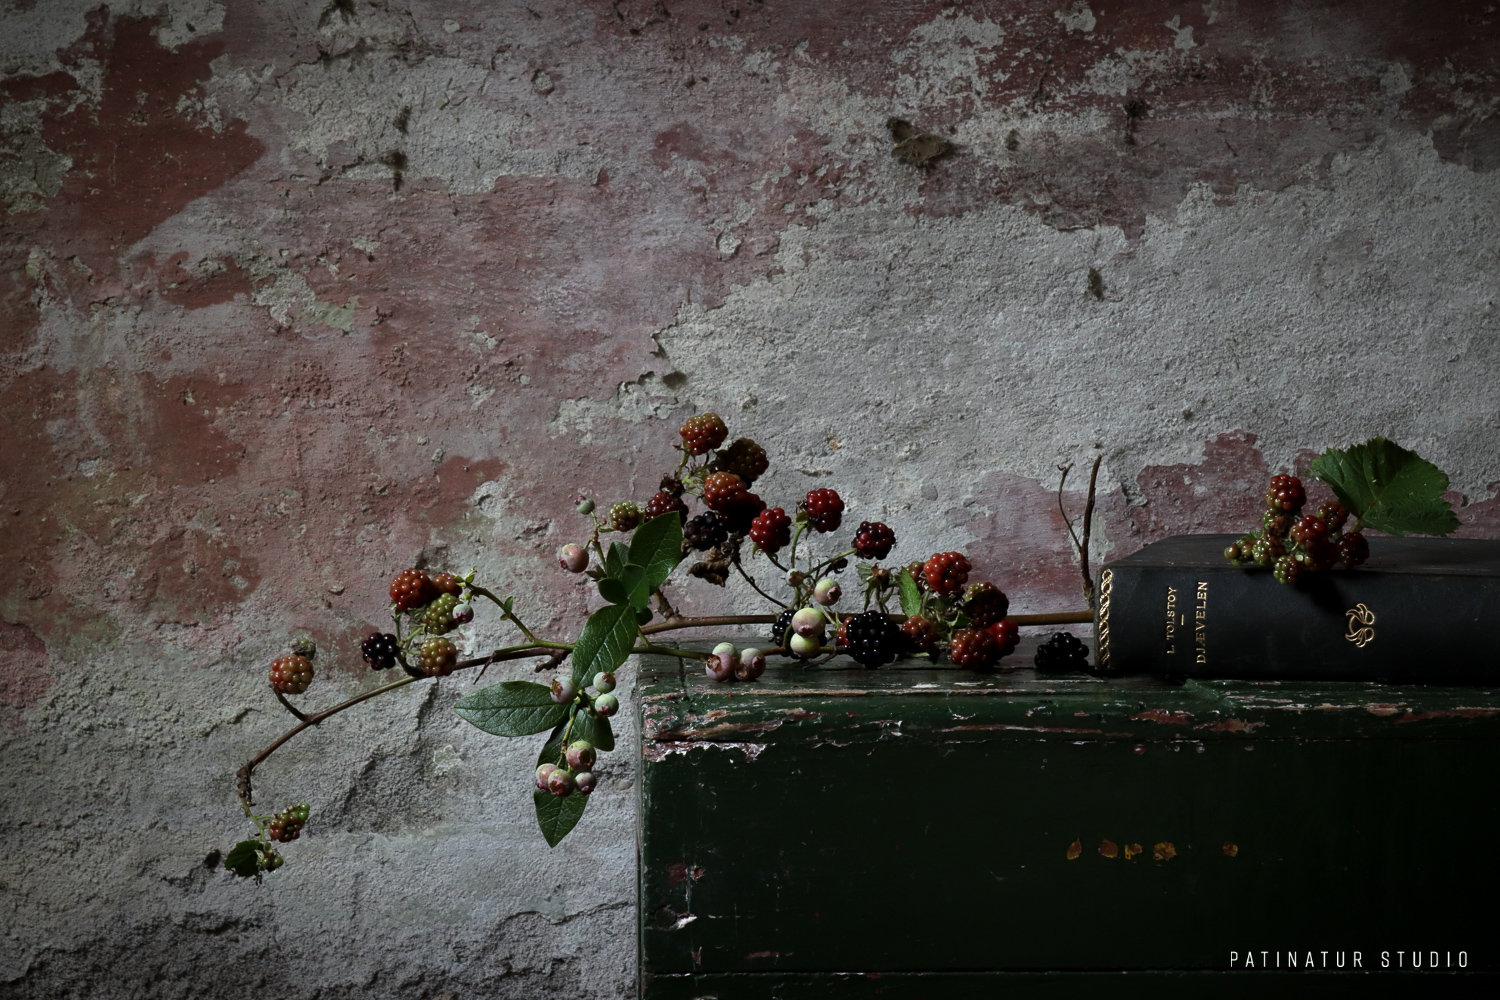 Photo Art: Moody and rustic still life photo with berry branches and book